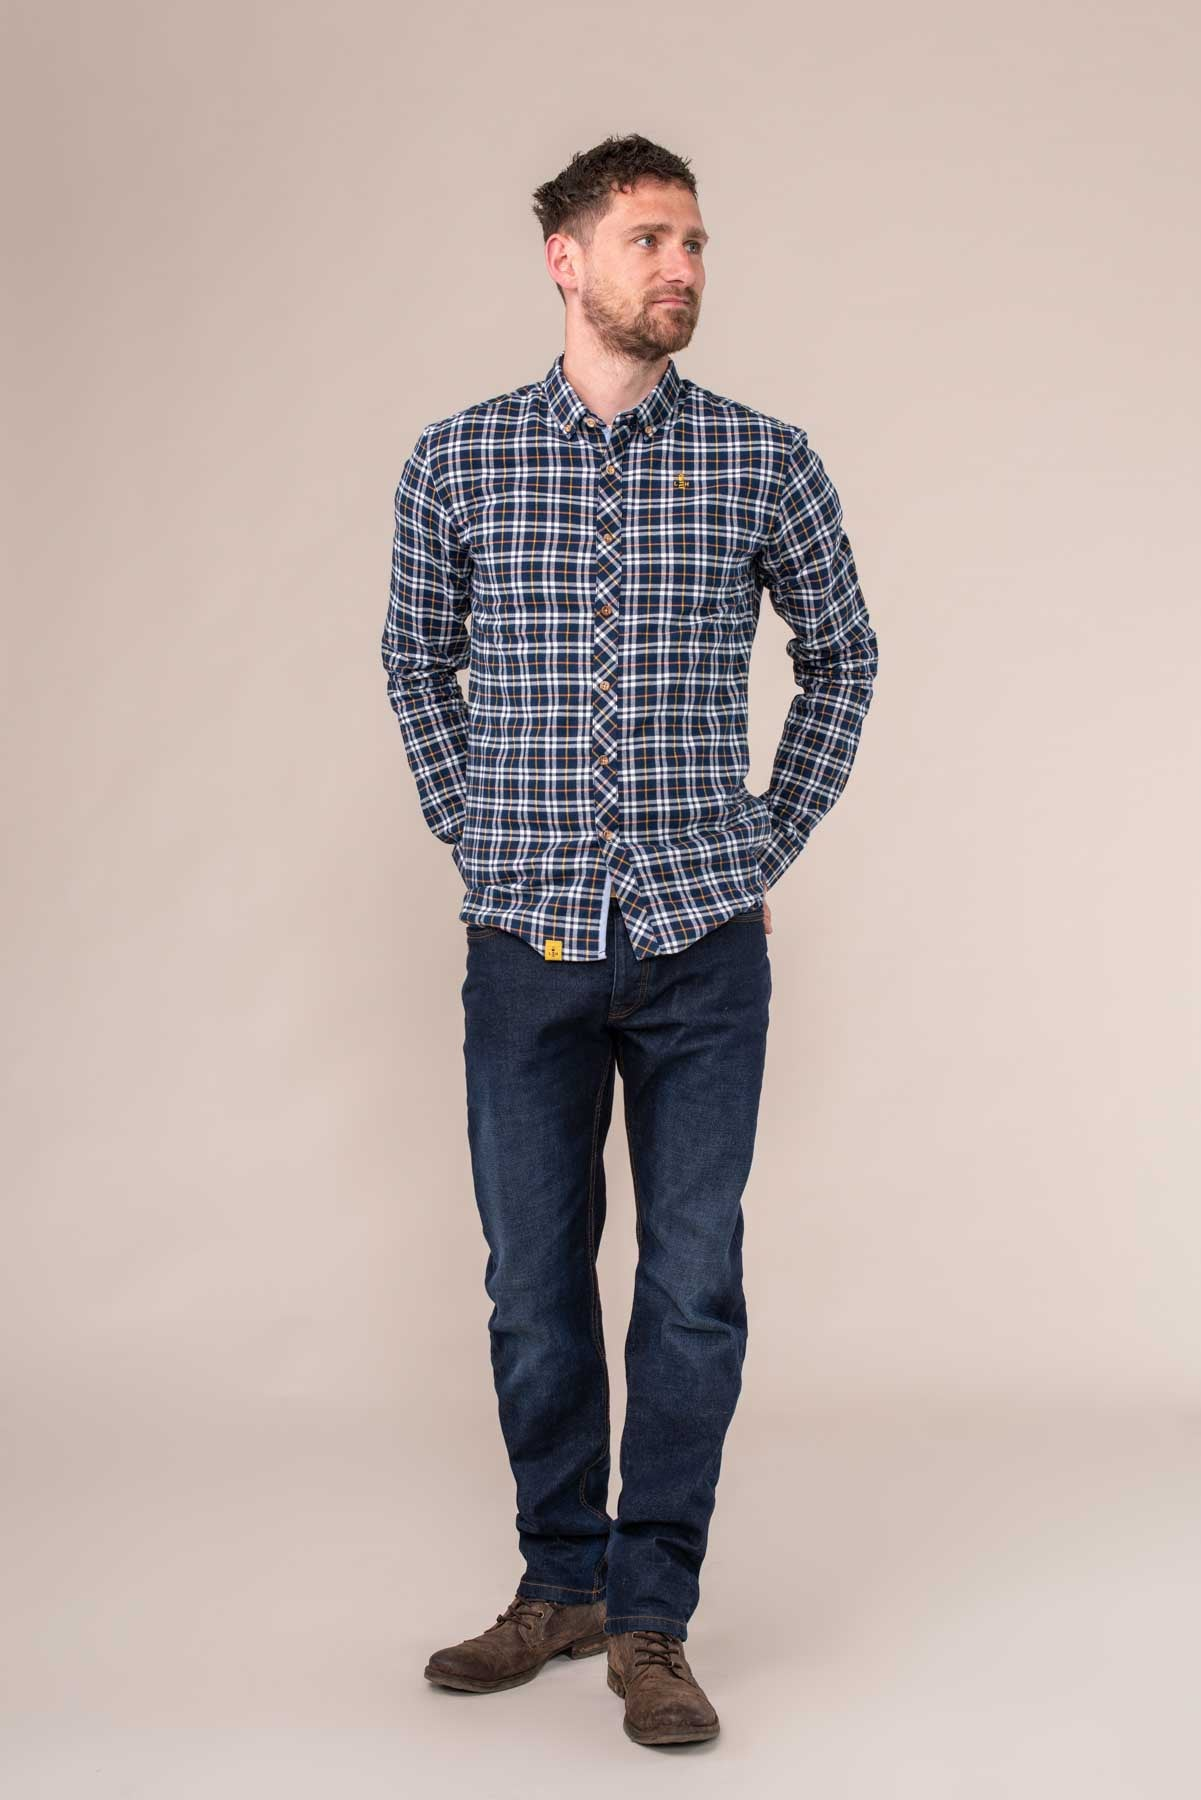 Tide Checked Shirt. 100% Cotton Oxford Style | Lighthouse